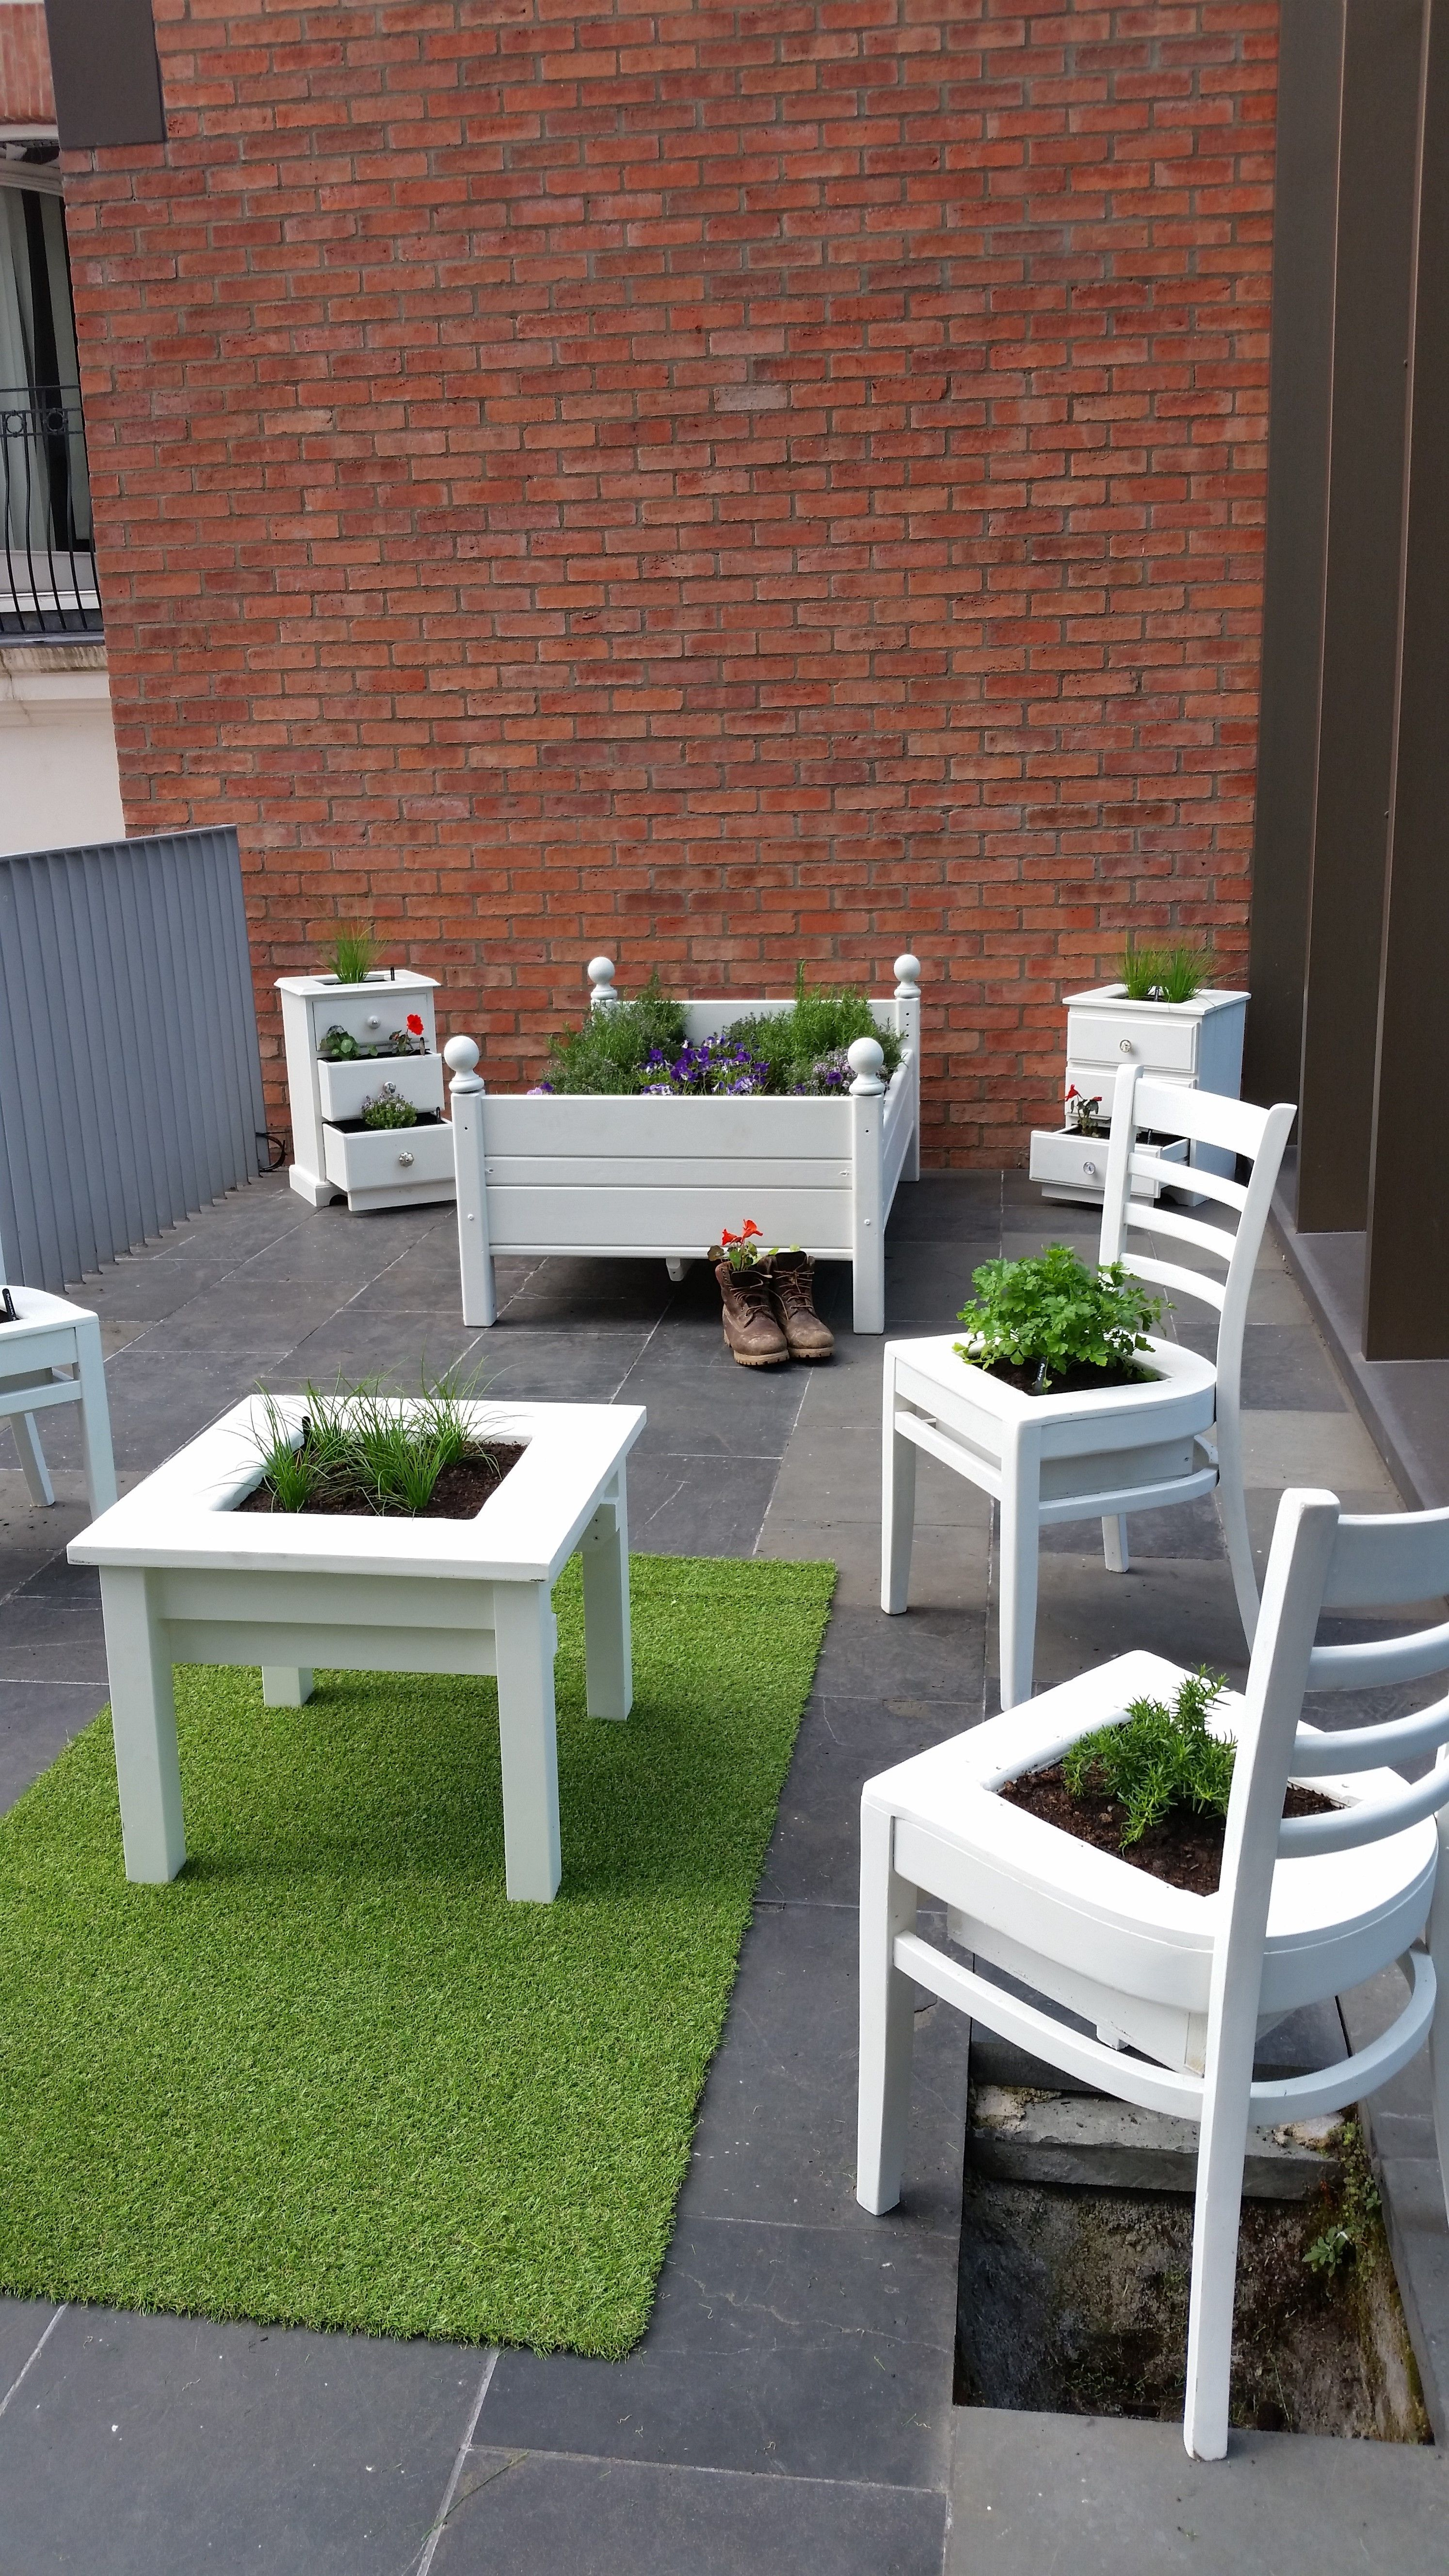 Old furniture planted with edible flowers and herbs in